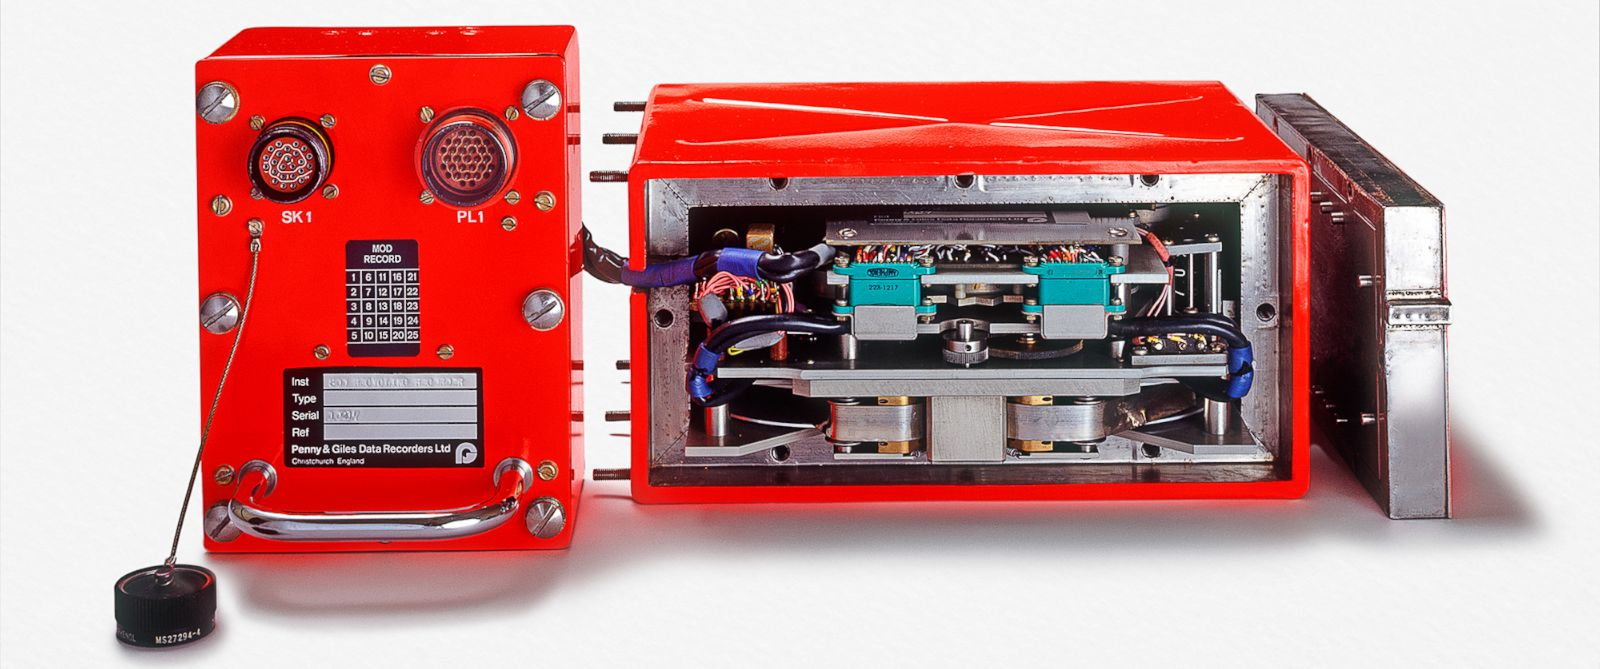 PHOTO: Front views of flight data recorder, with cover on and with cover removed.